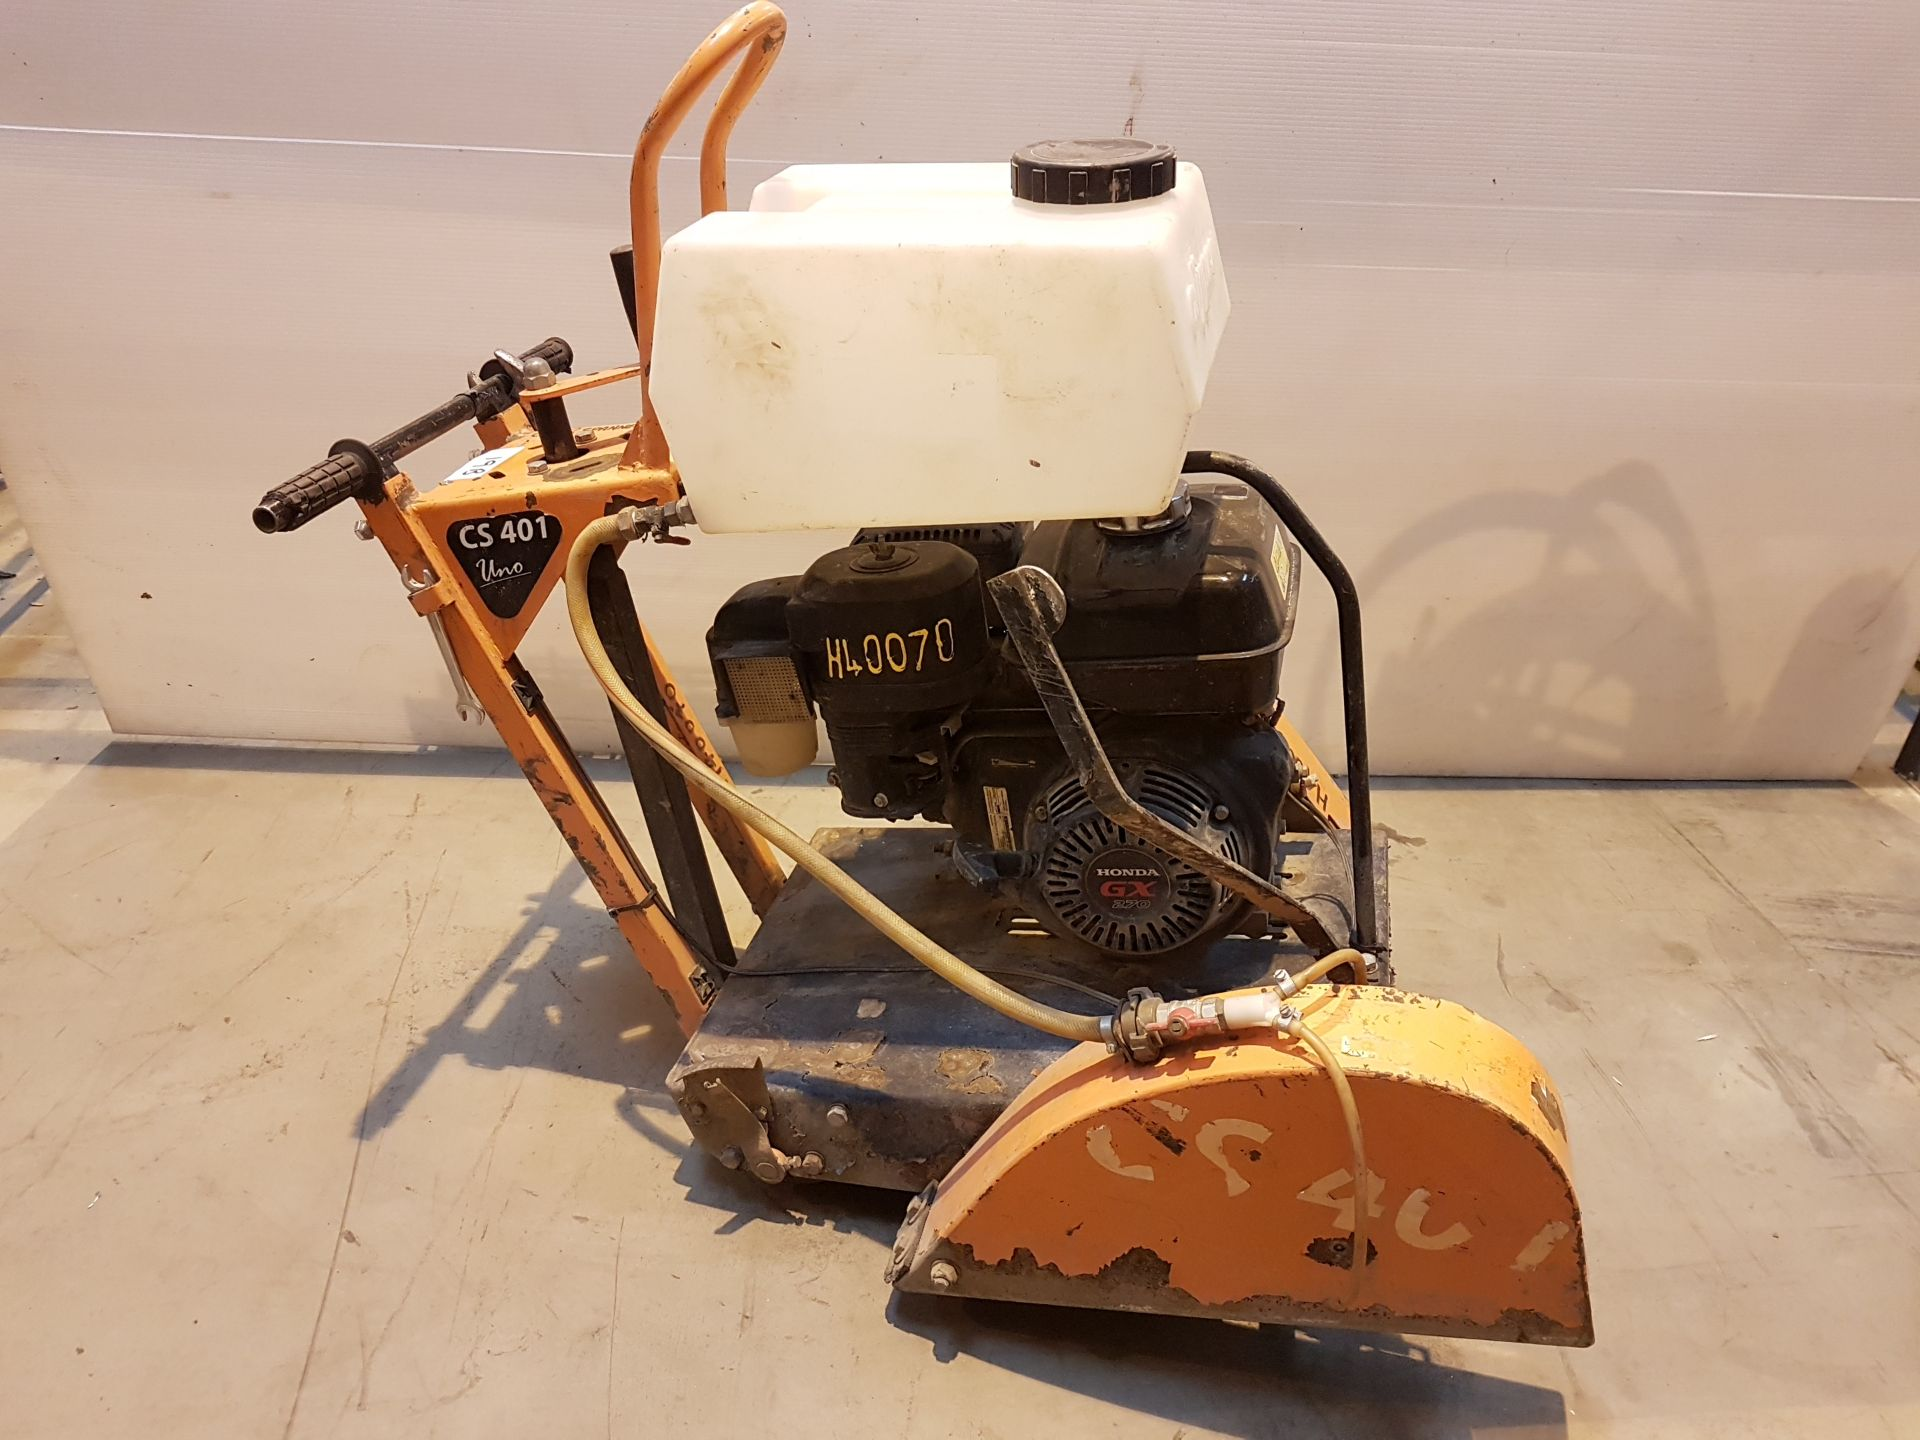 Lot 19 - Saint - Gobain CS401 Honda engined petrol road saw h40070, working